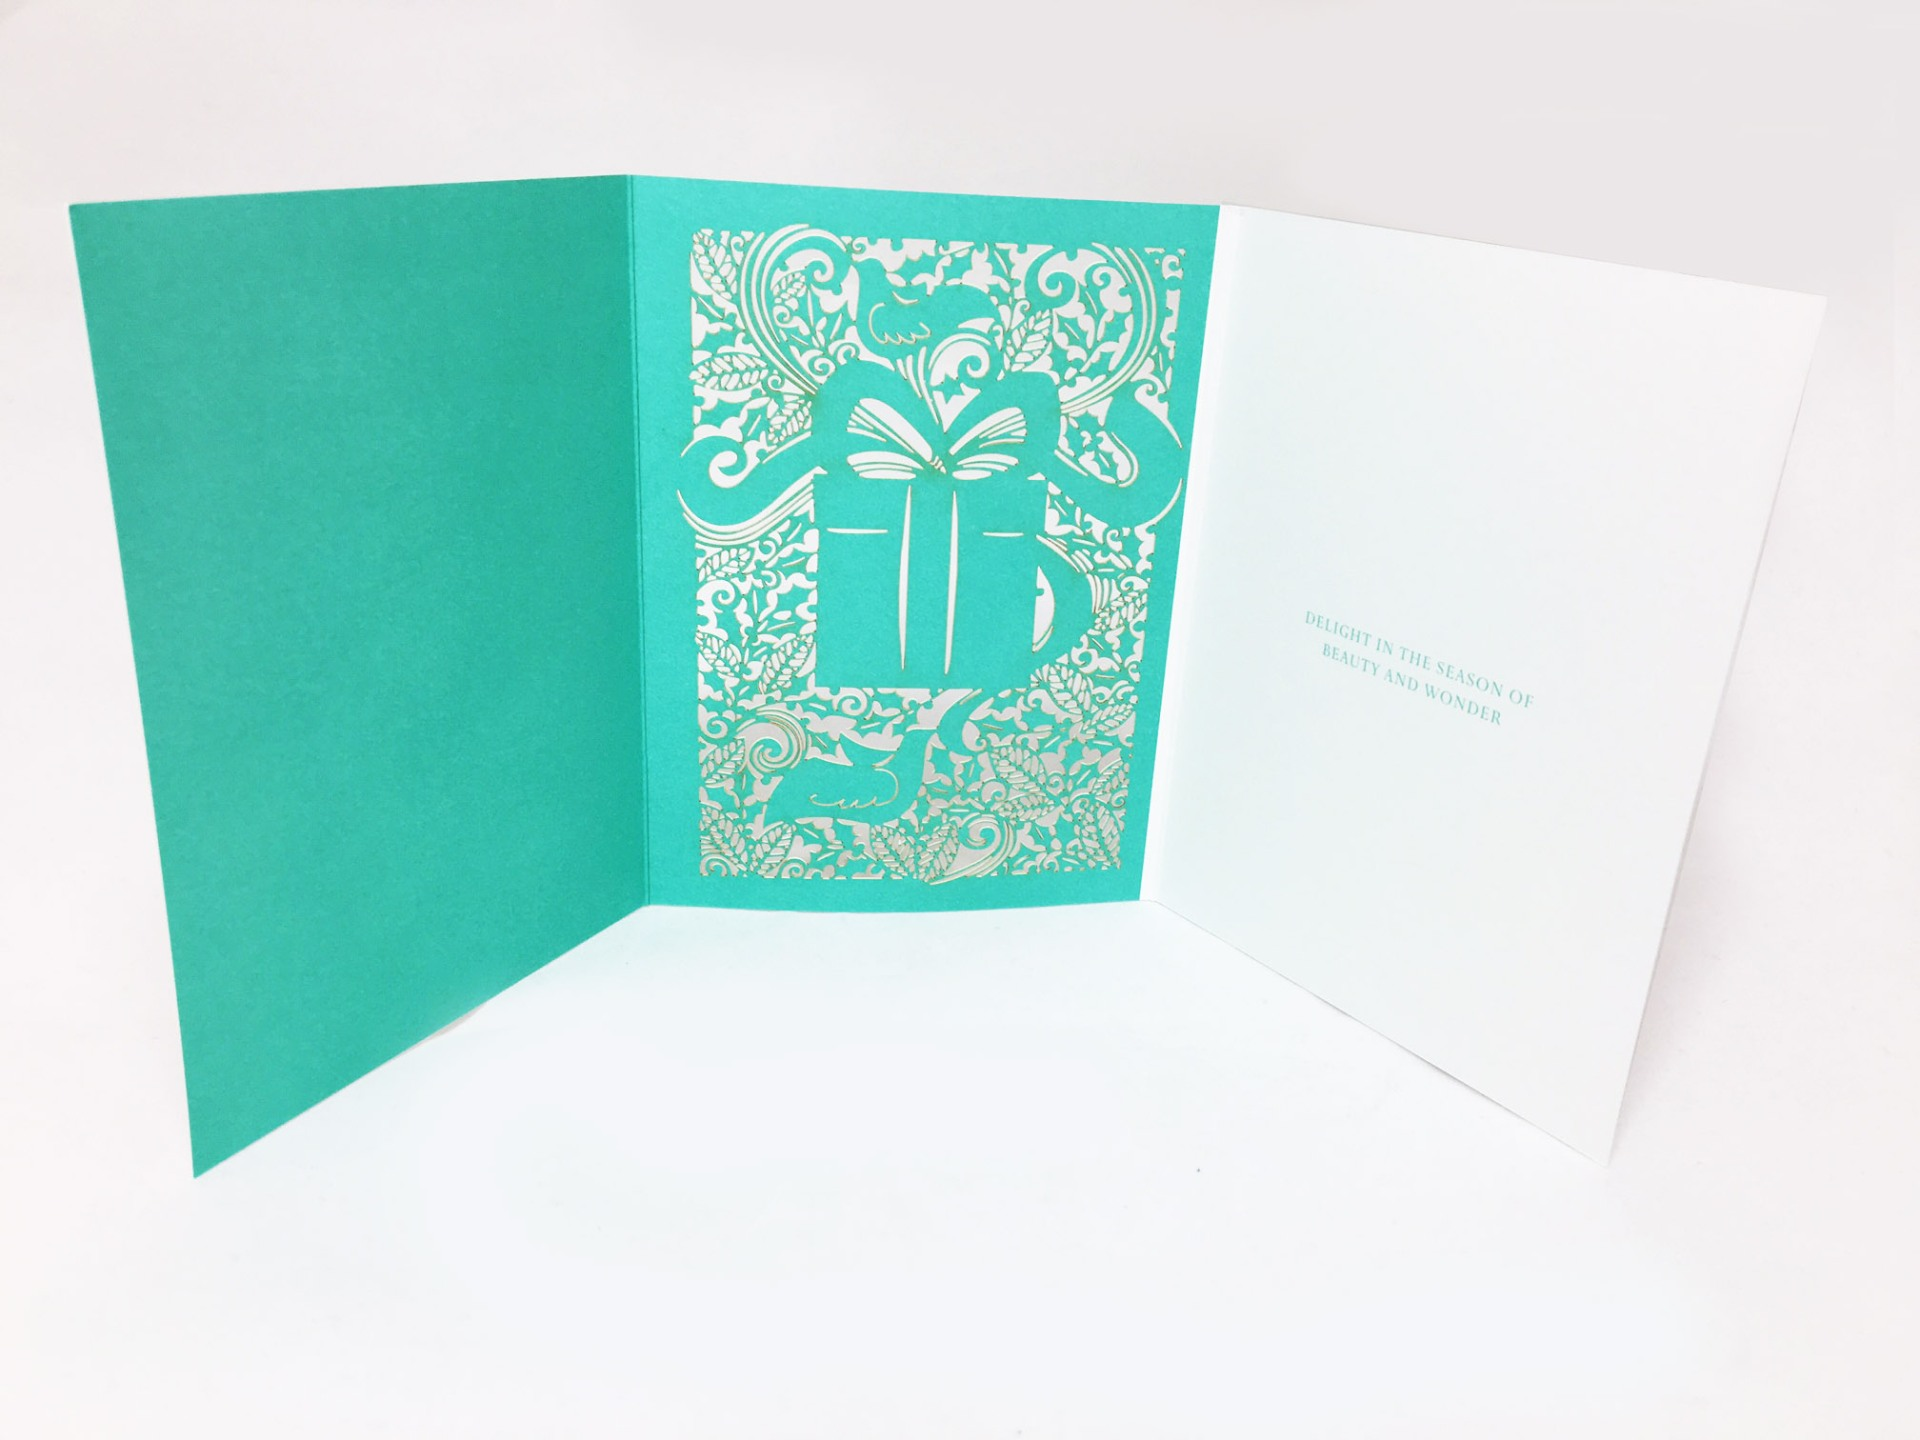 How To Wow With A Simple Laser Cut Greeting Card Beyond The Fold